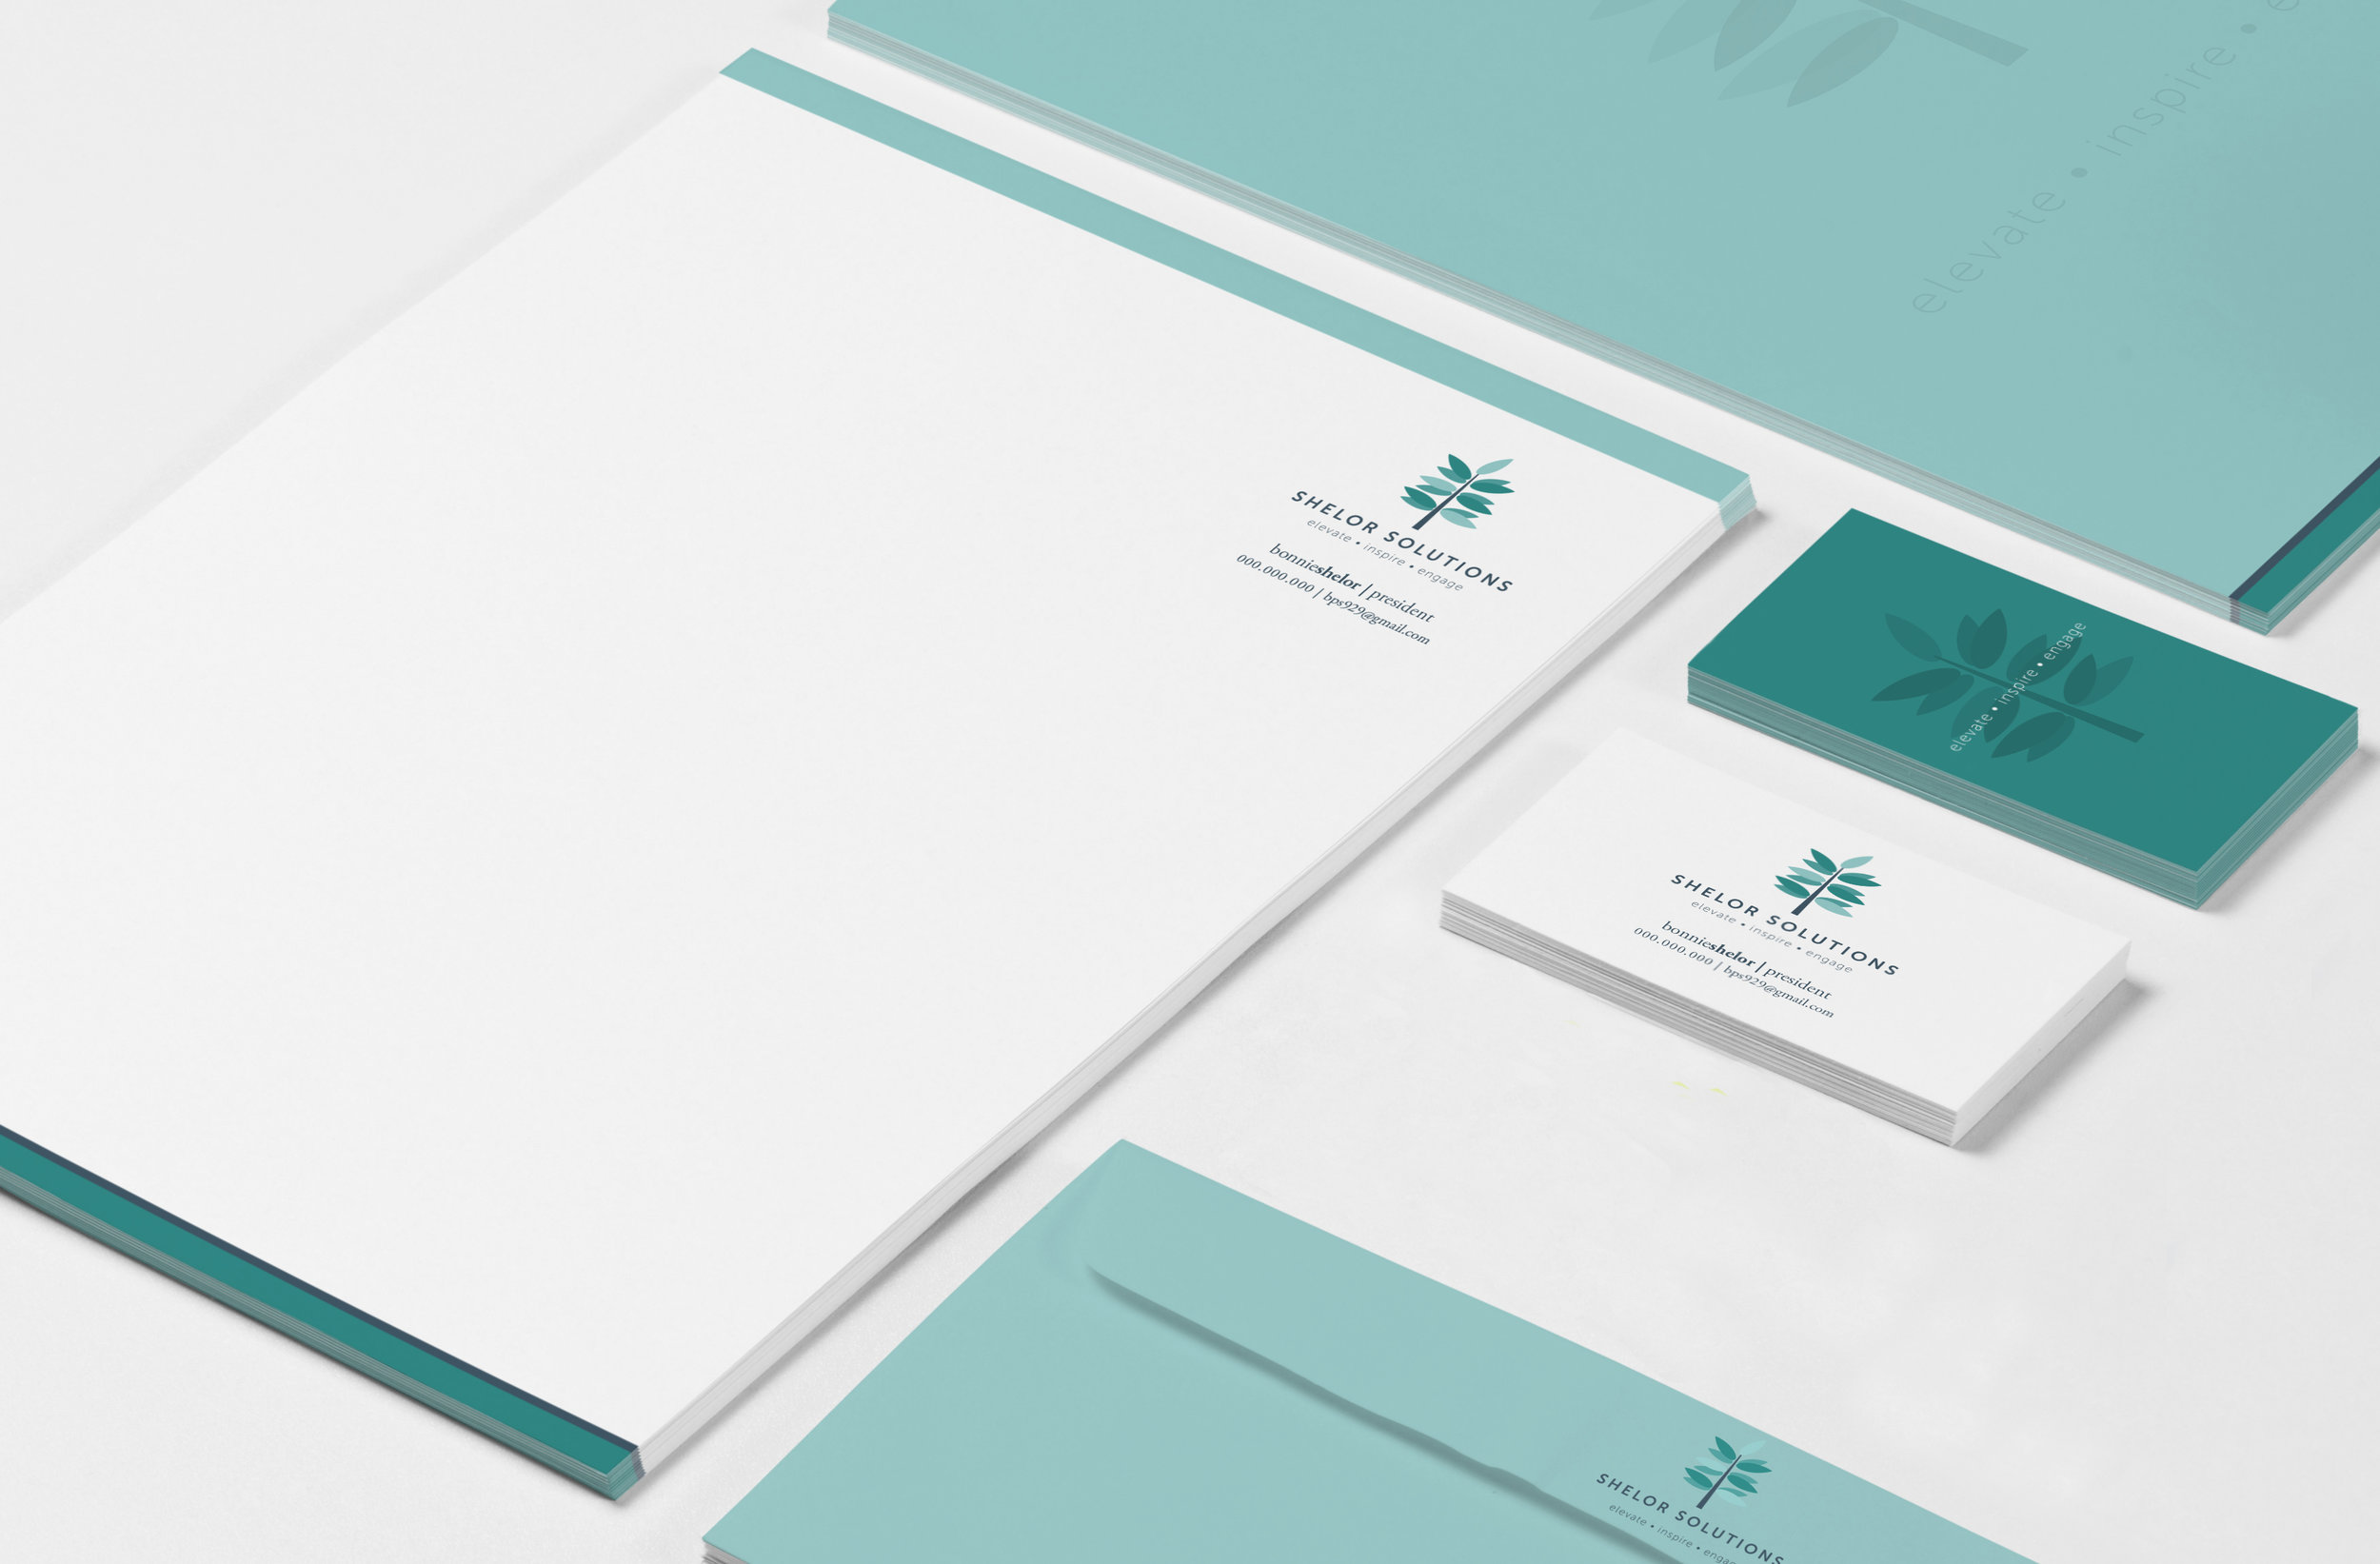 shelor stationery mockup.jpg